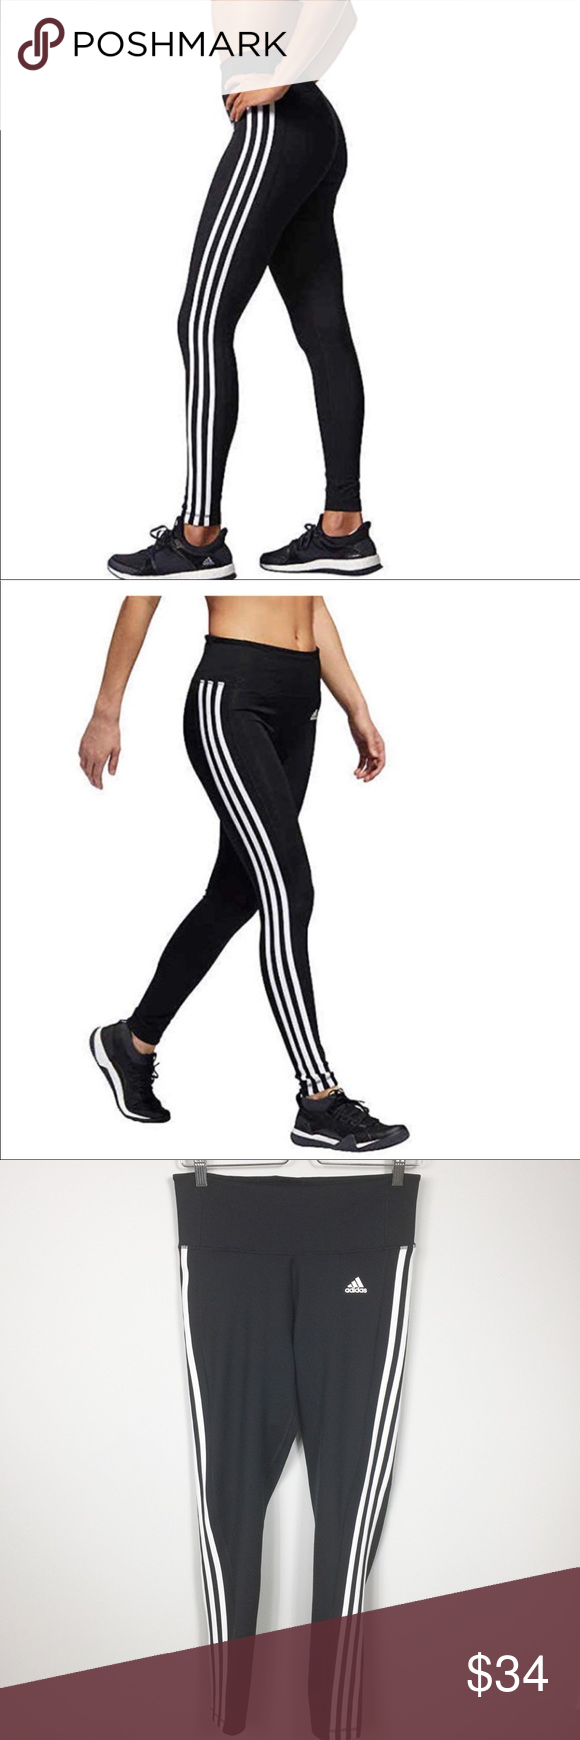 adidas leggings inseam